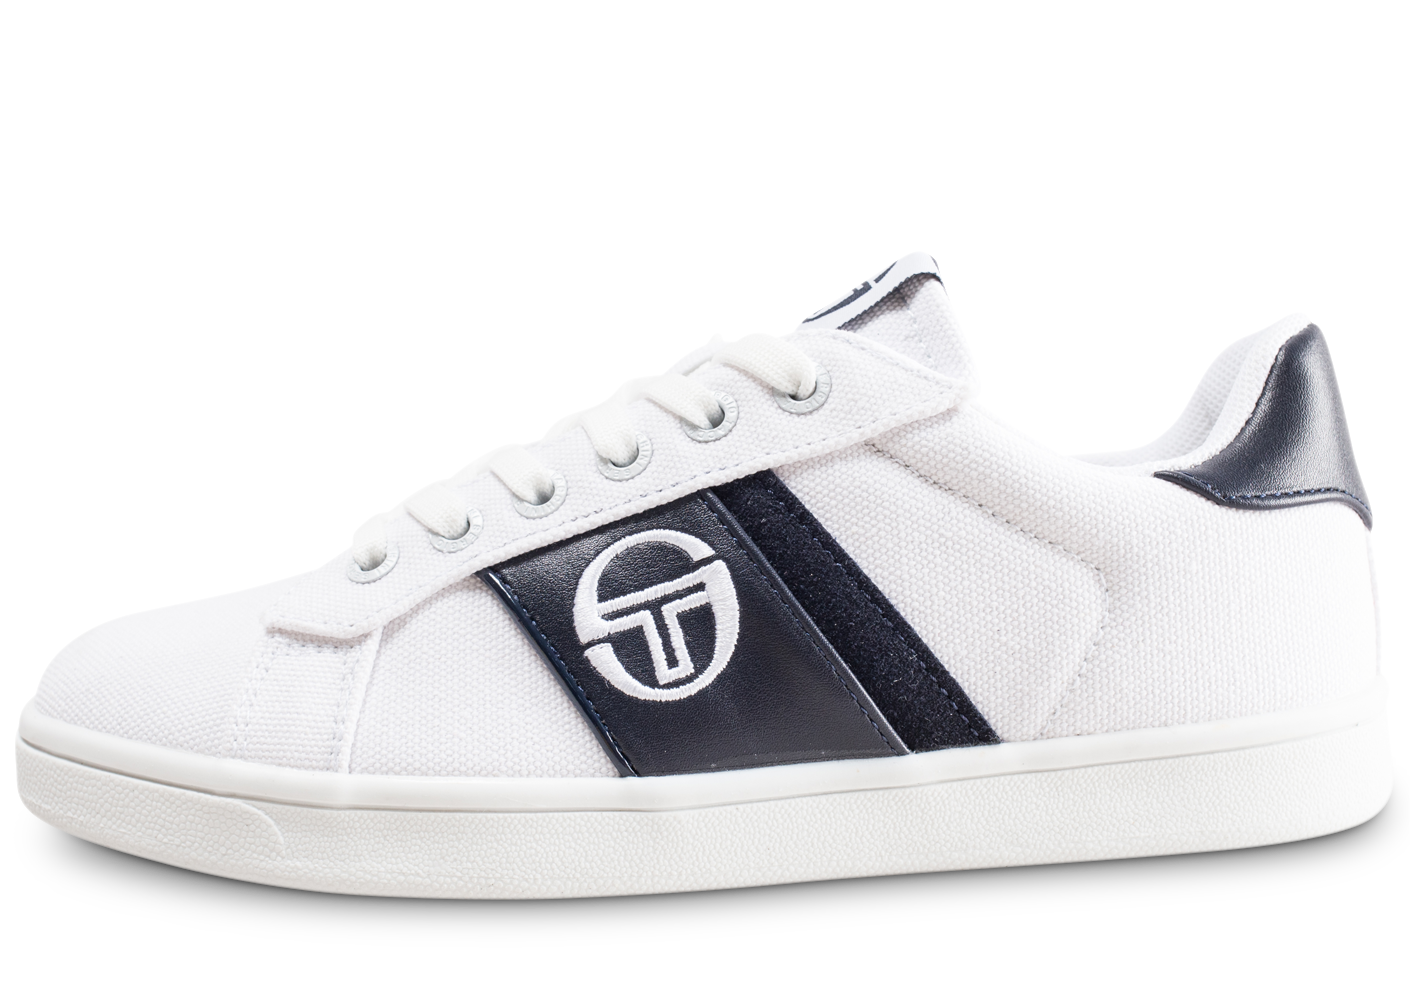 Sergio Tacchini Enfant Parigi Blanche Et Bleue Junior Baskets